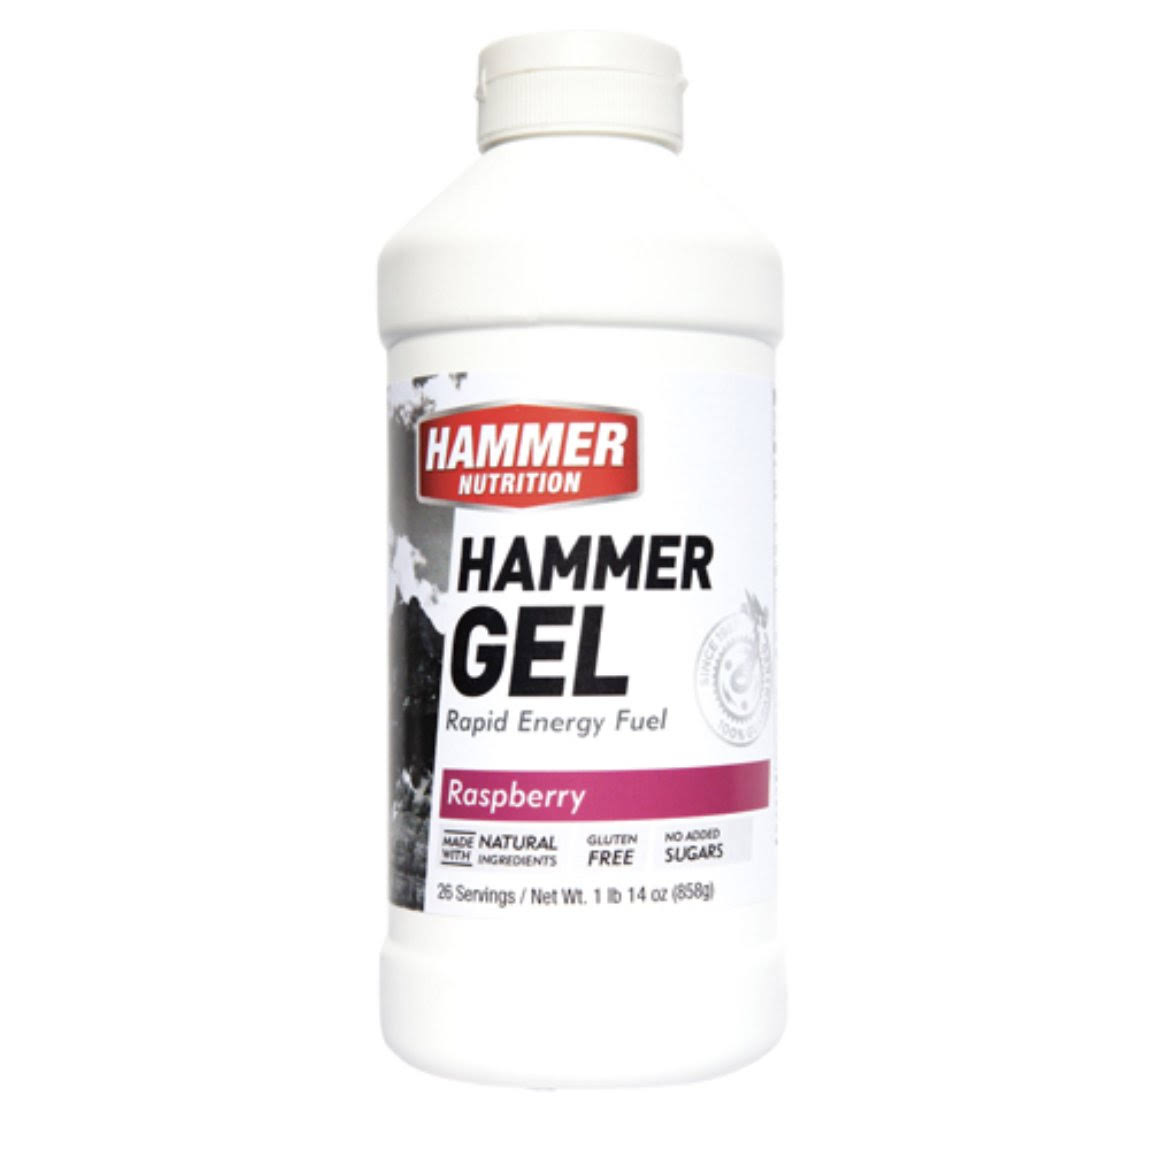 Hammer Nutrition Gel, Raspberry - 20 oz bottle